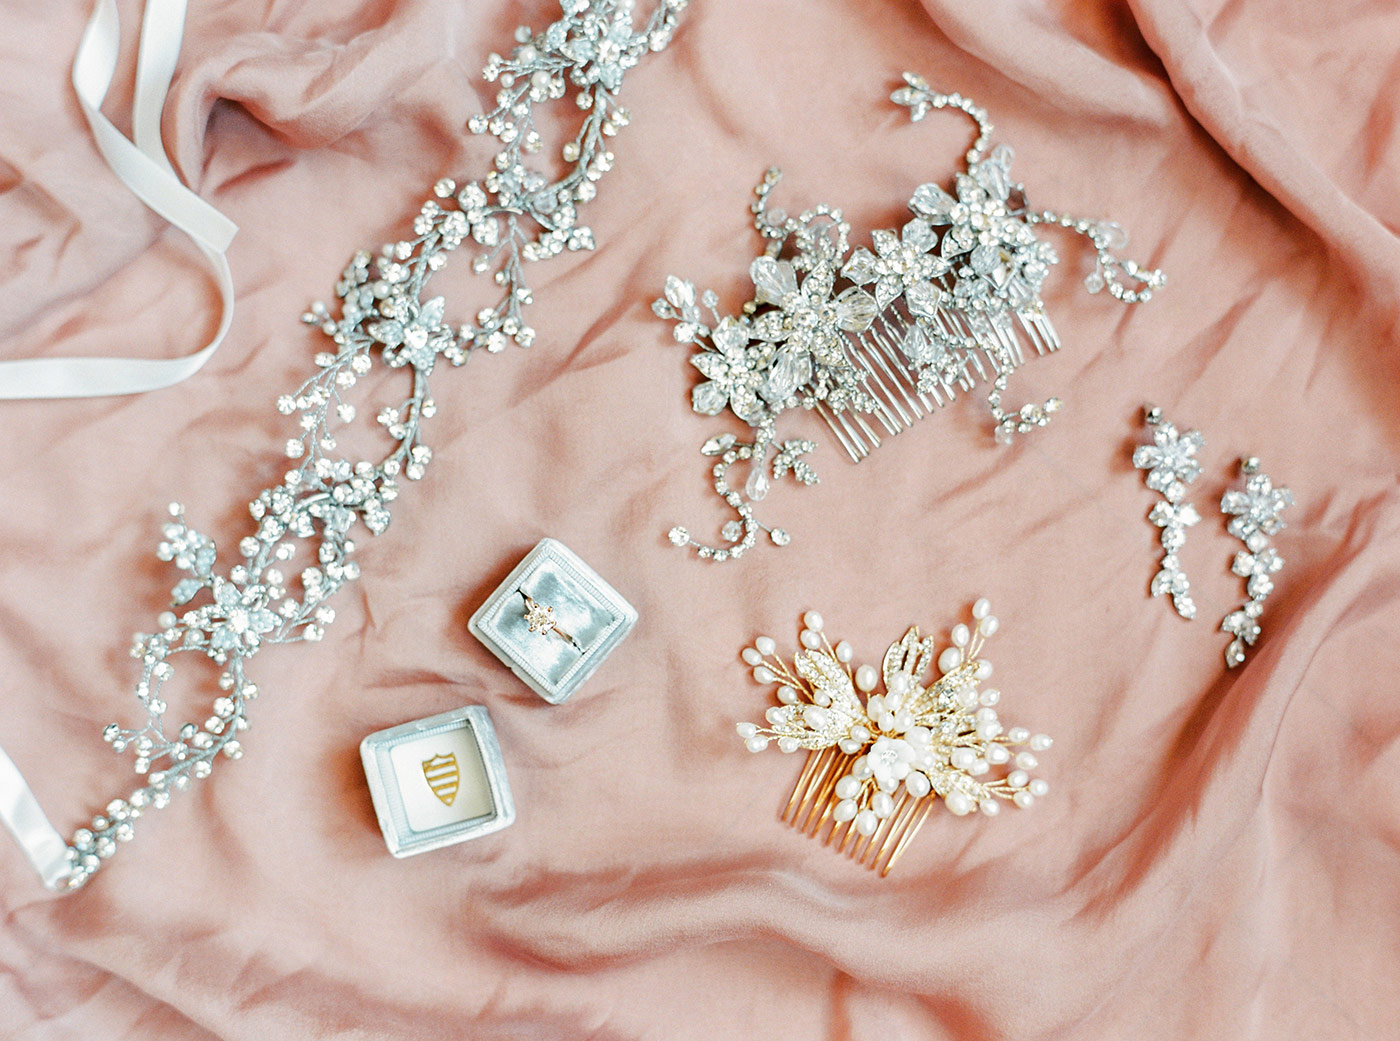 Bride's Accessories for her Wedding